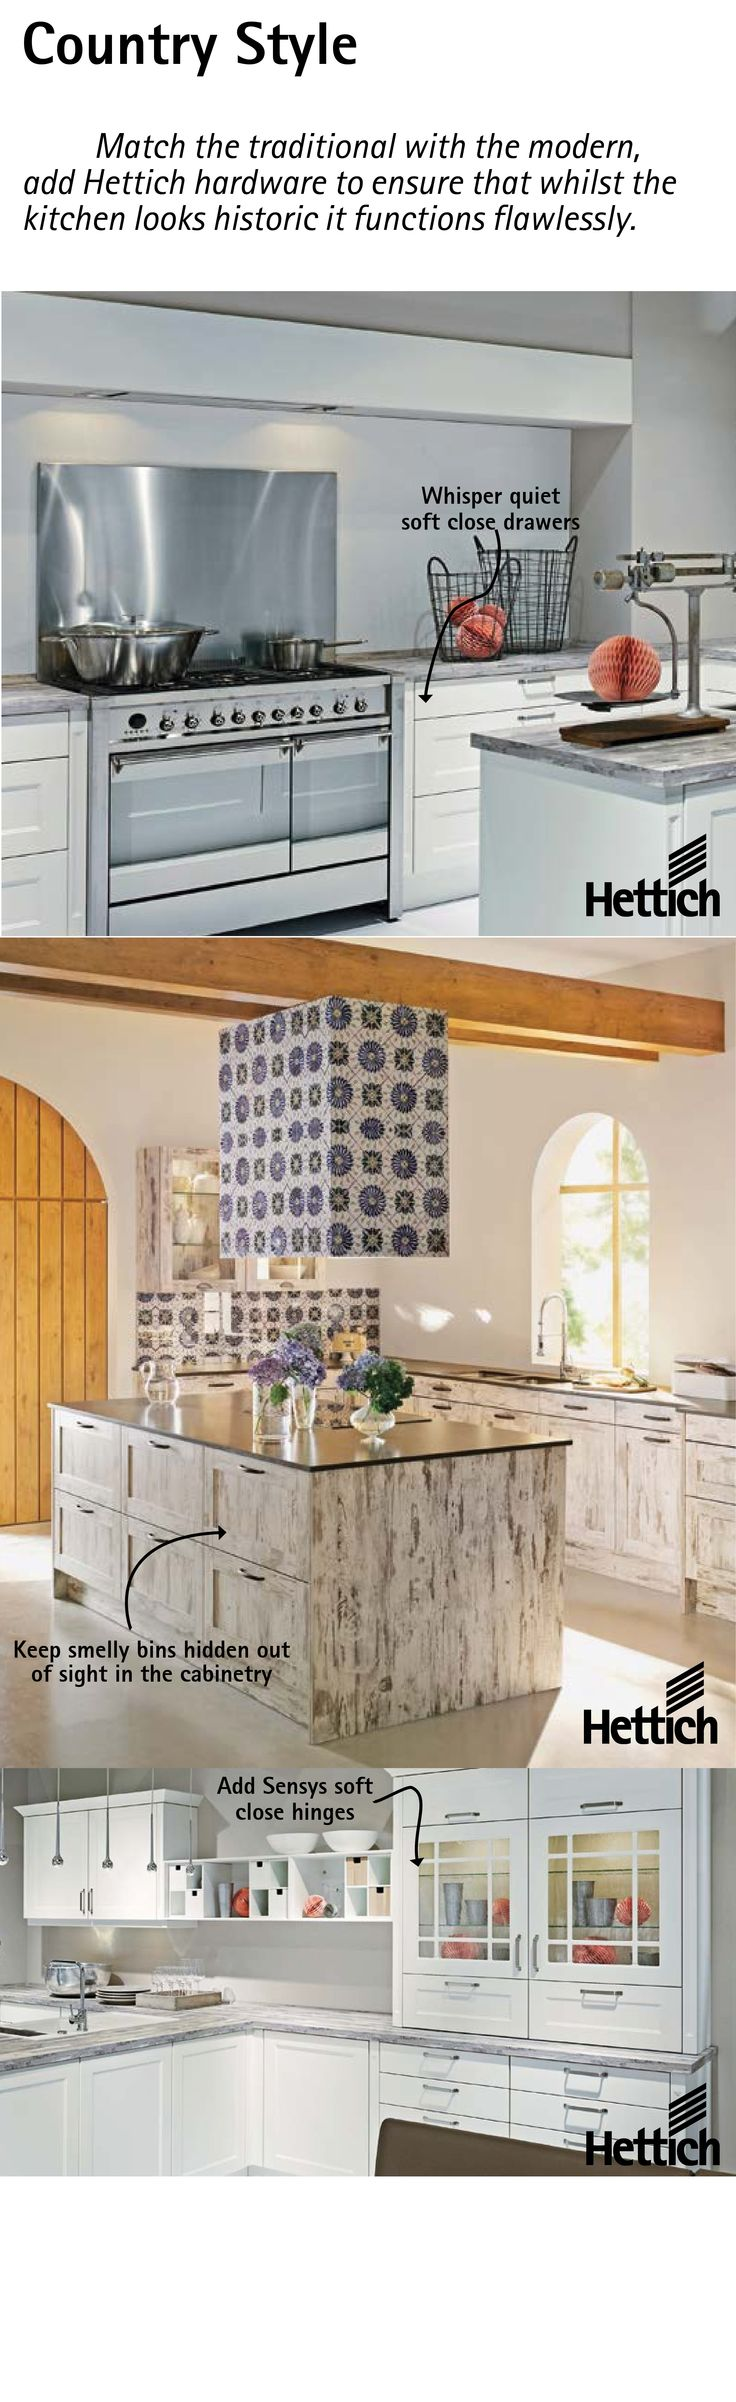 Match the traditional with the modern, add Hettich hardware to ensure that whilst the kitchen looks historic it functions flawlessly. Click the pin for more inspiration. #countrykitchen #classickitchen